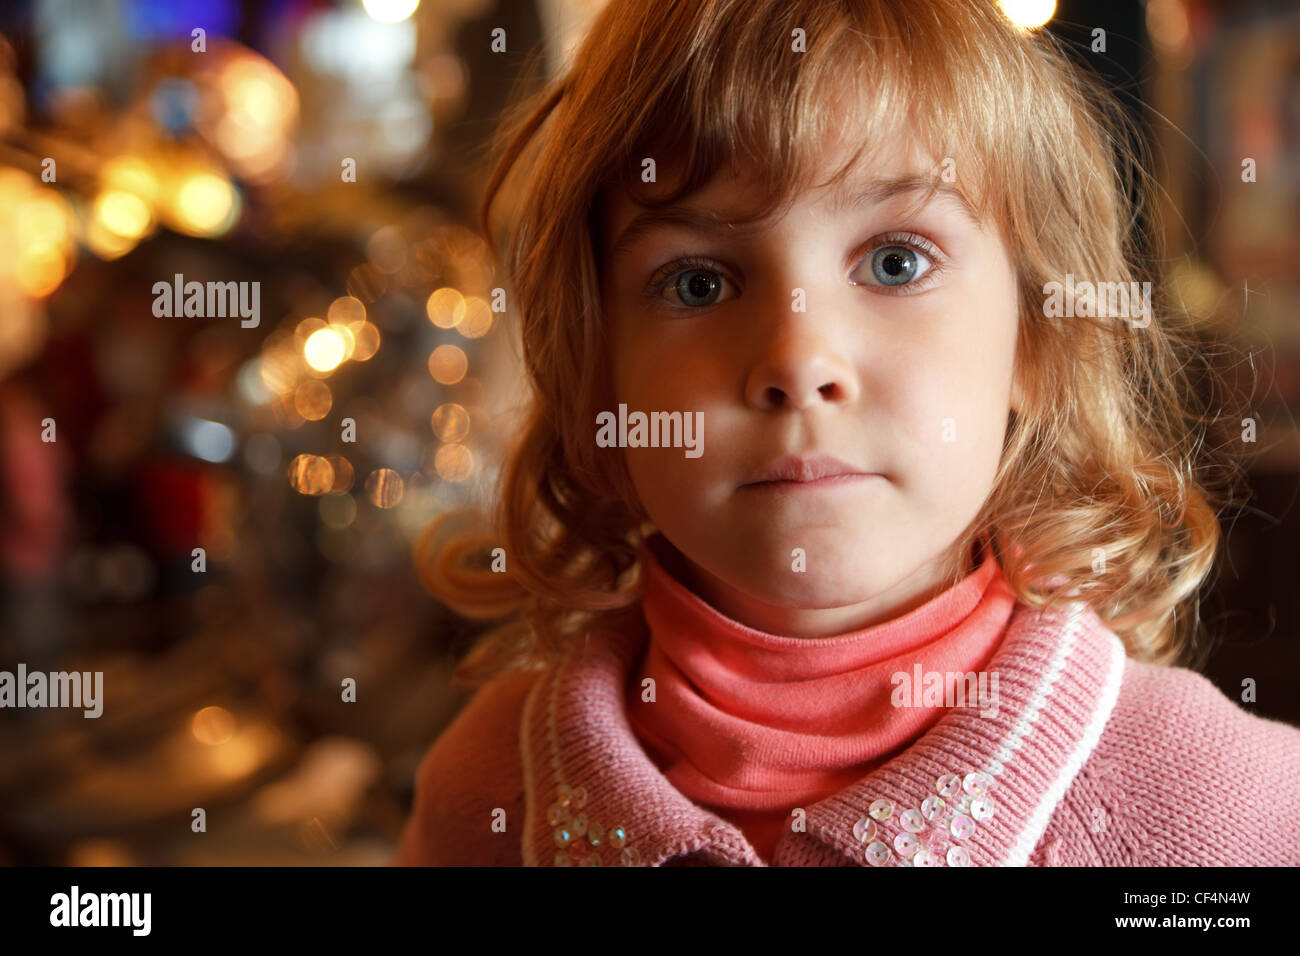 Portrait of charming little girl in background lights. Close-up. Indoors. - Stock Image